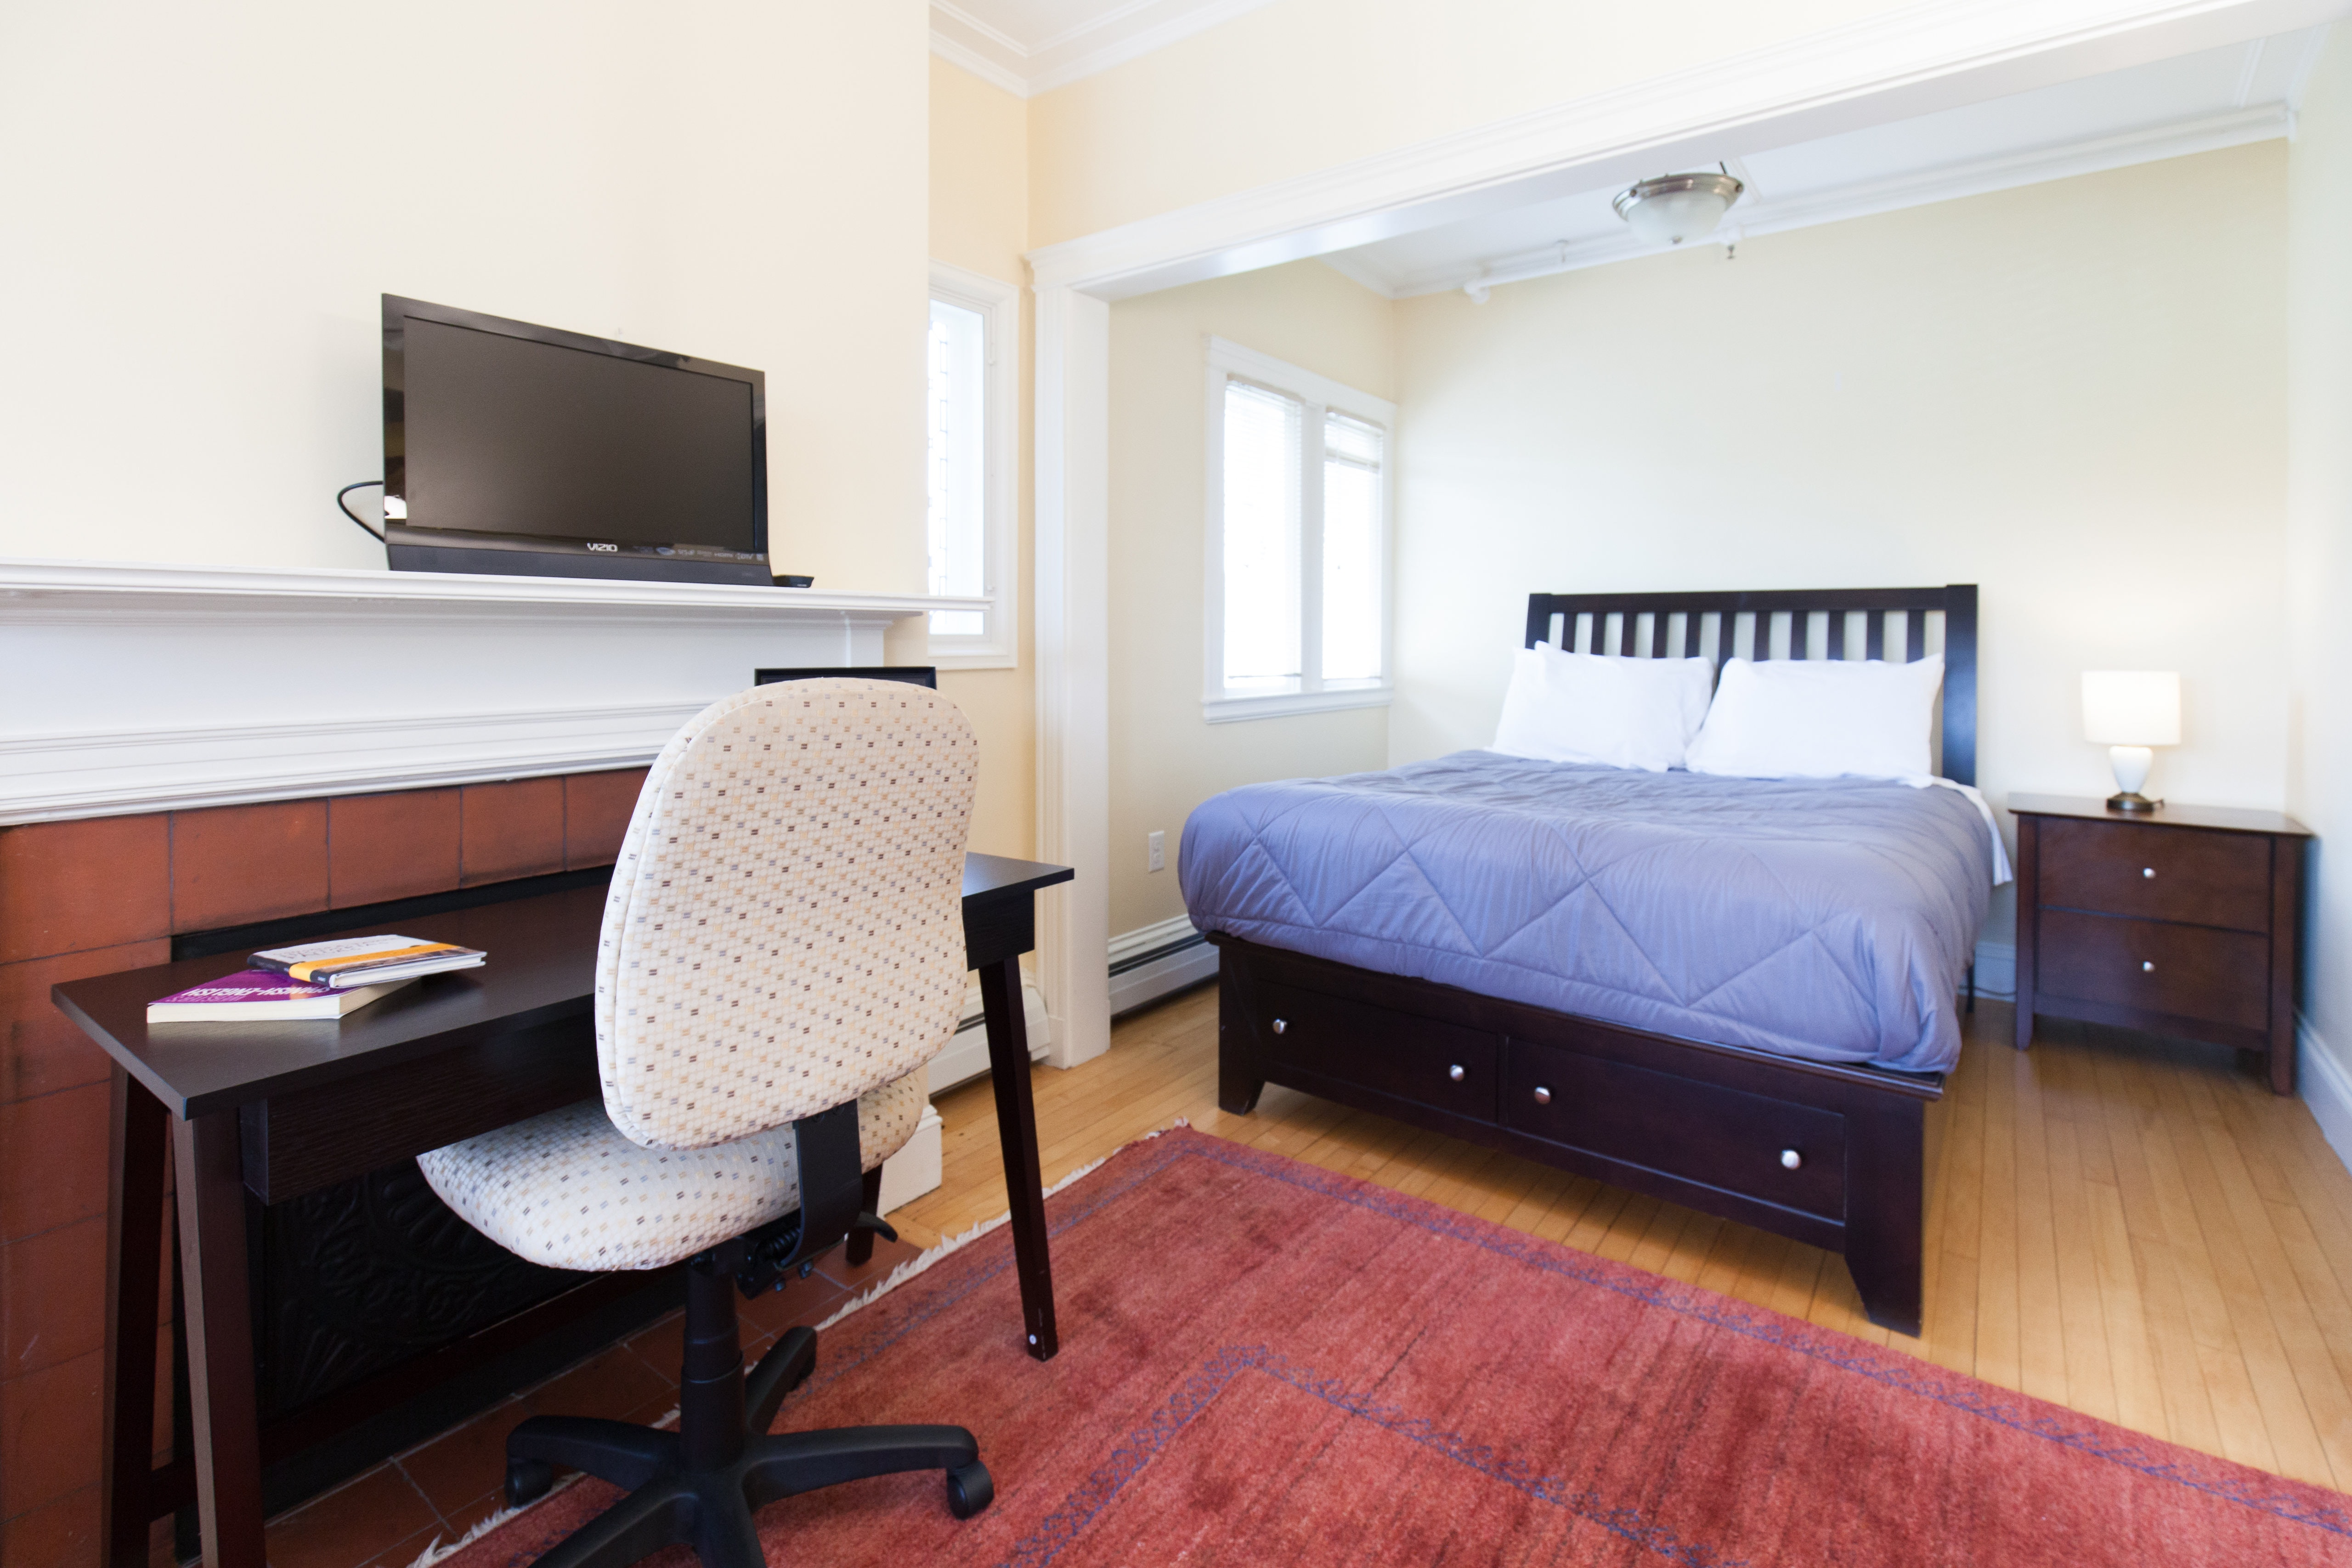 Living area of 83 Brattle Street studio apartment with alcove with bed, night table, desk, and chair